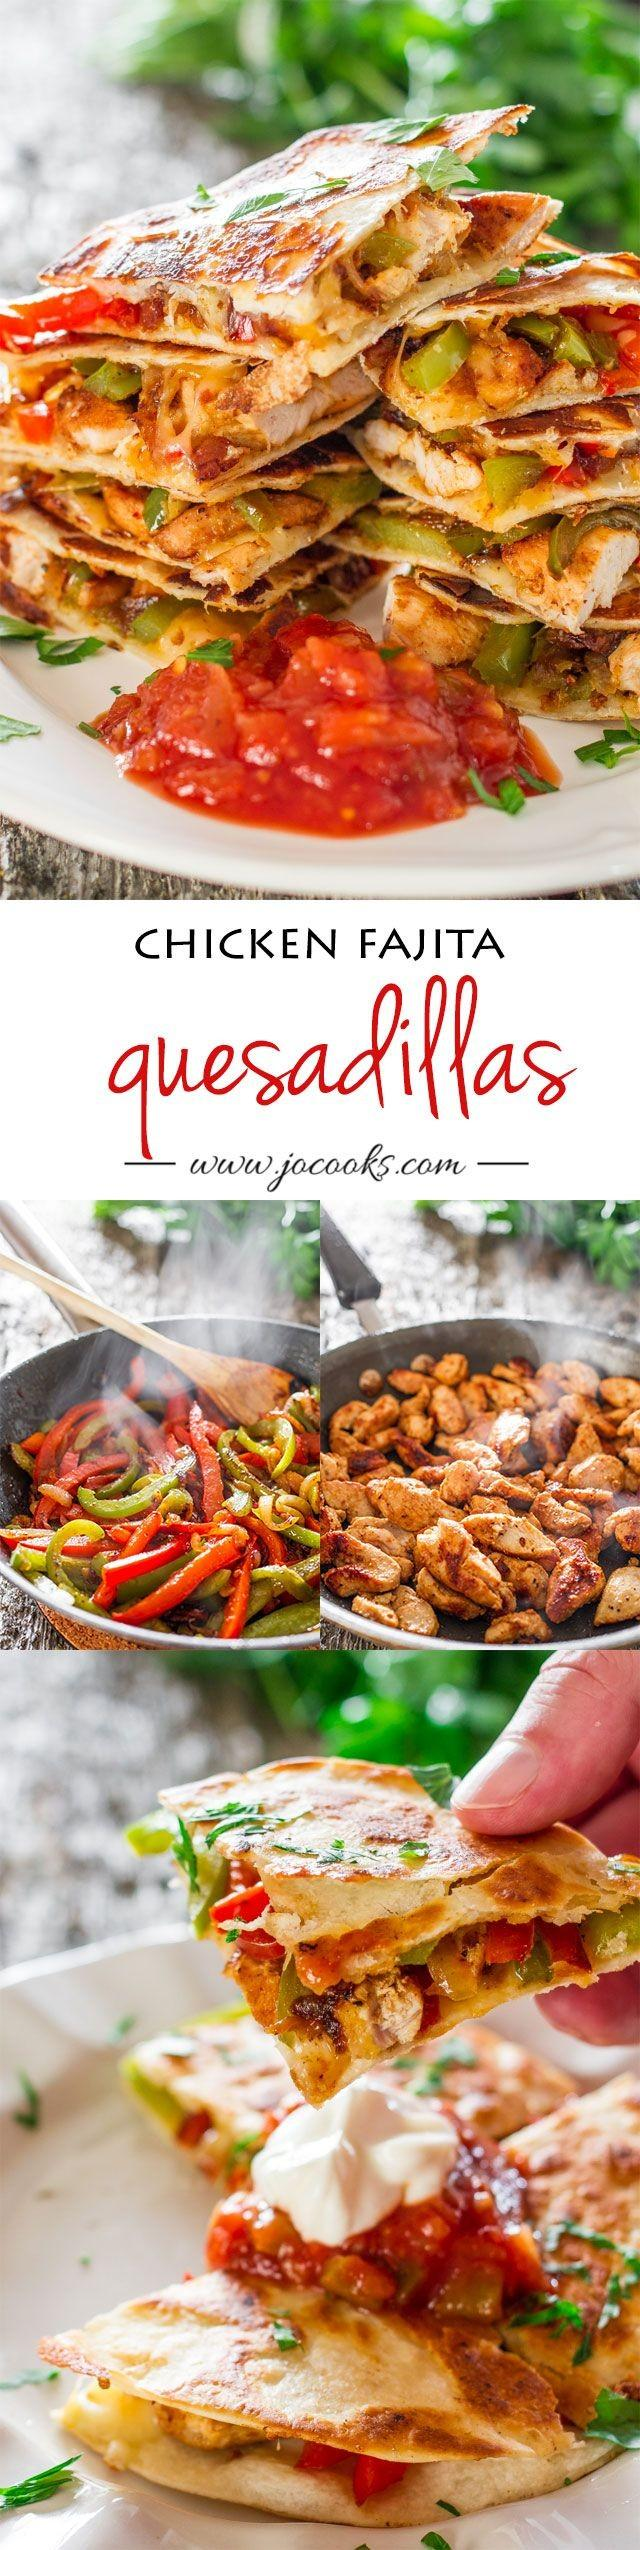 Wedding Theme - Chicken Fajita Quesadillas #2269861 - Weddbook